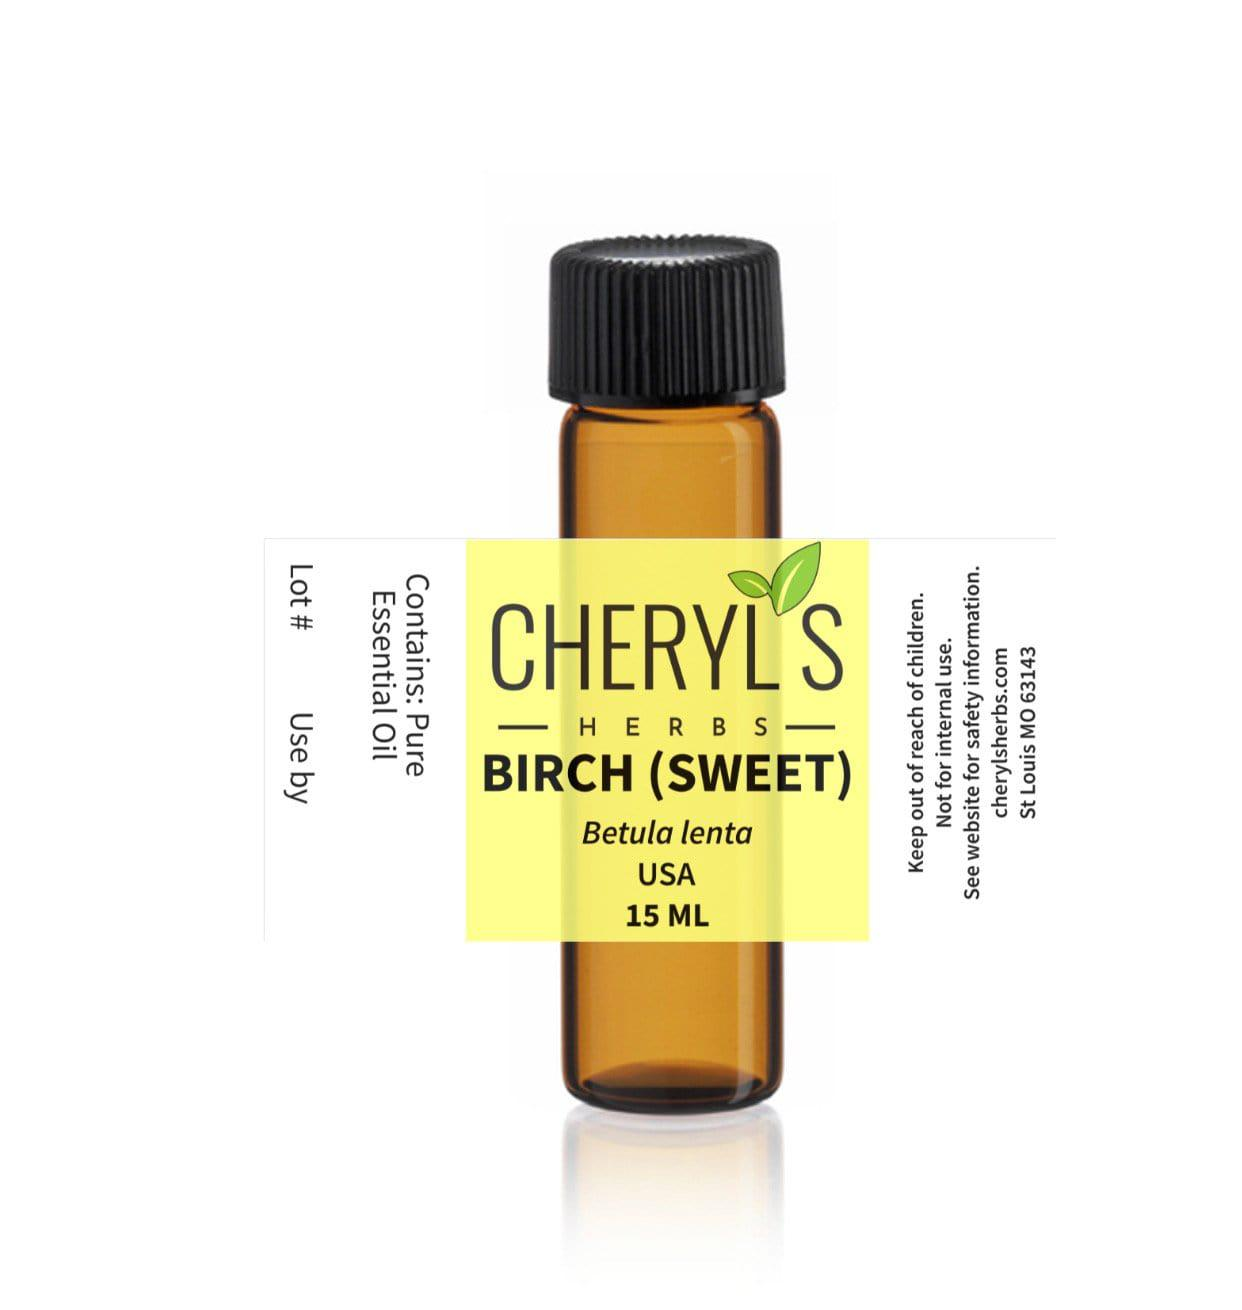 BIRCH SWEET ESSENTIAL OIL - Cheryls Herbs